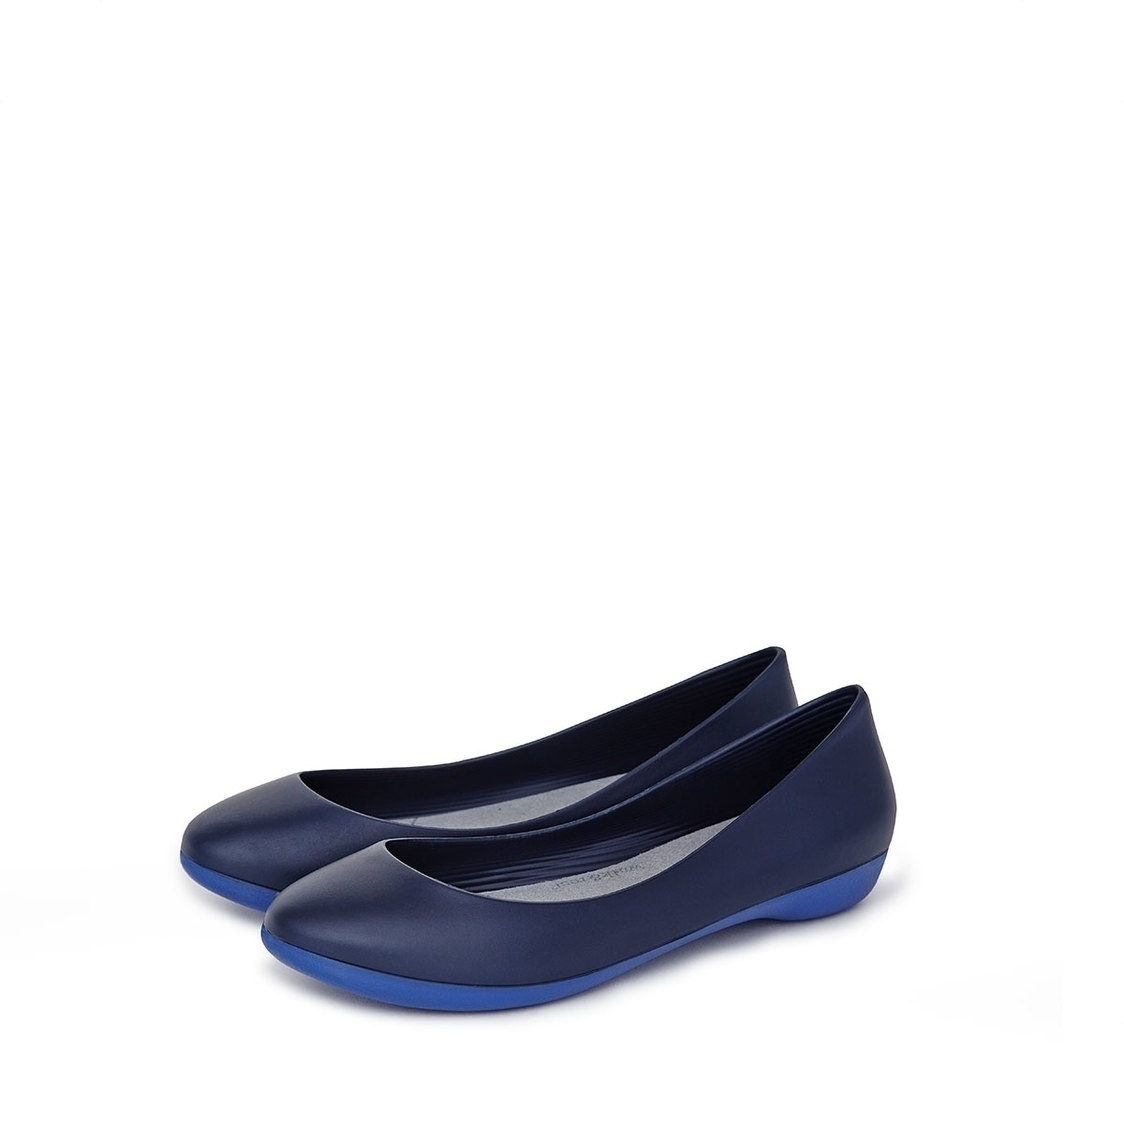 F2 Flat-Rounded Heel height 2cm Splash Blue